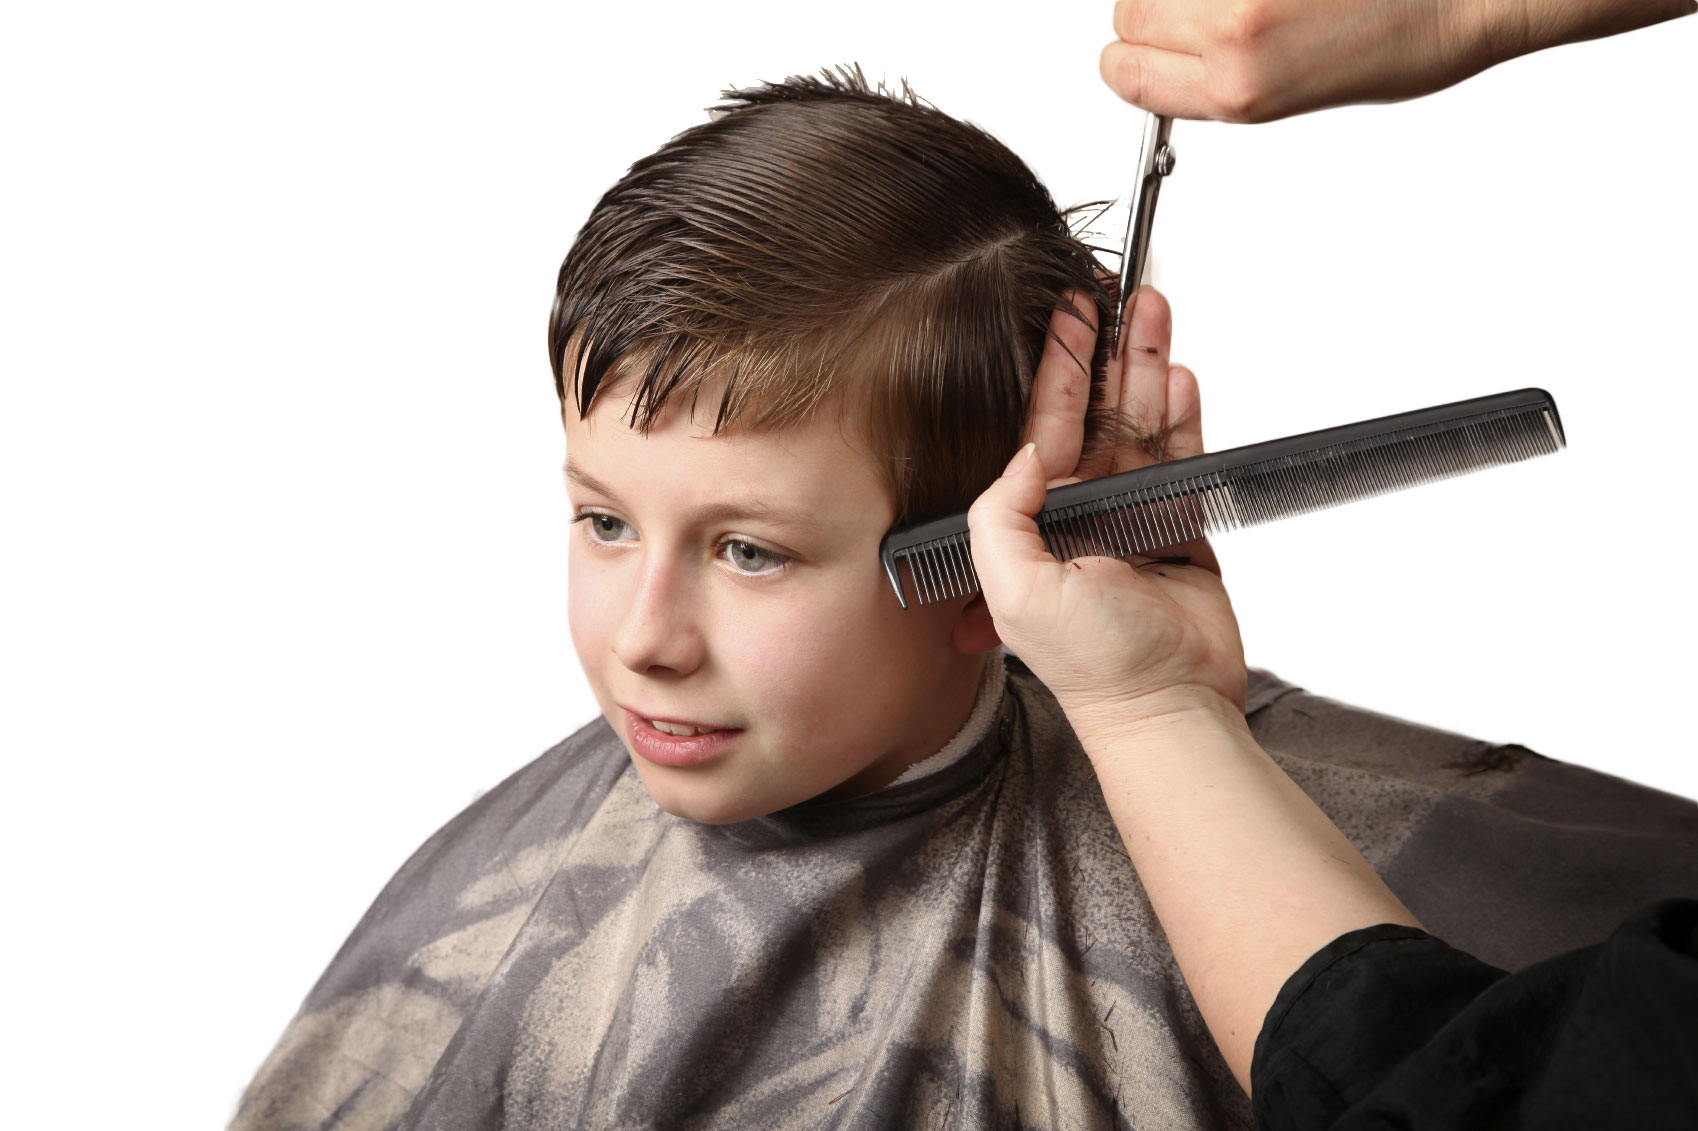 hair cut amp style for him mens hair cuts amp salon